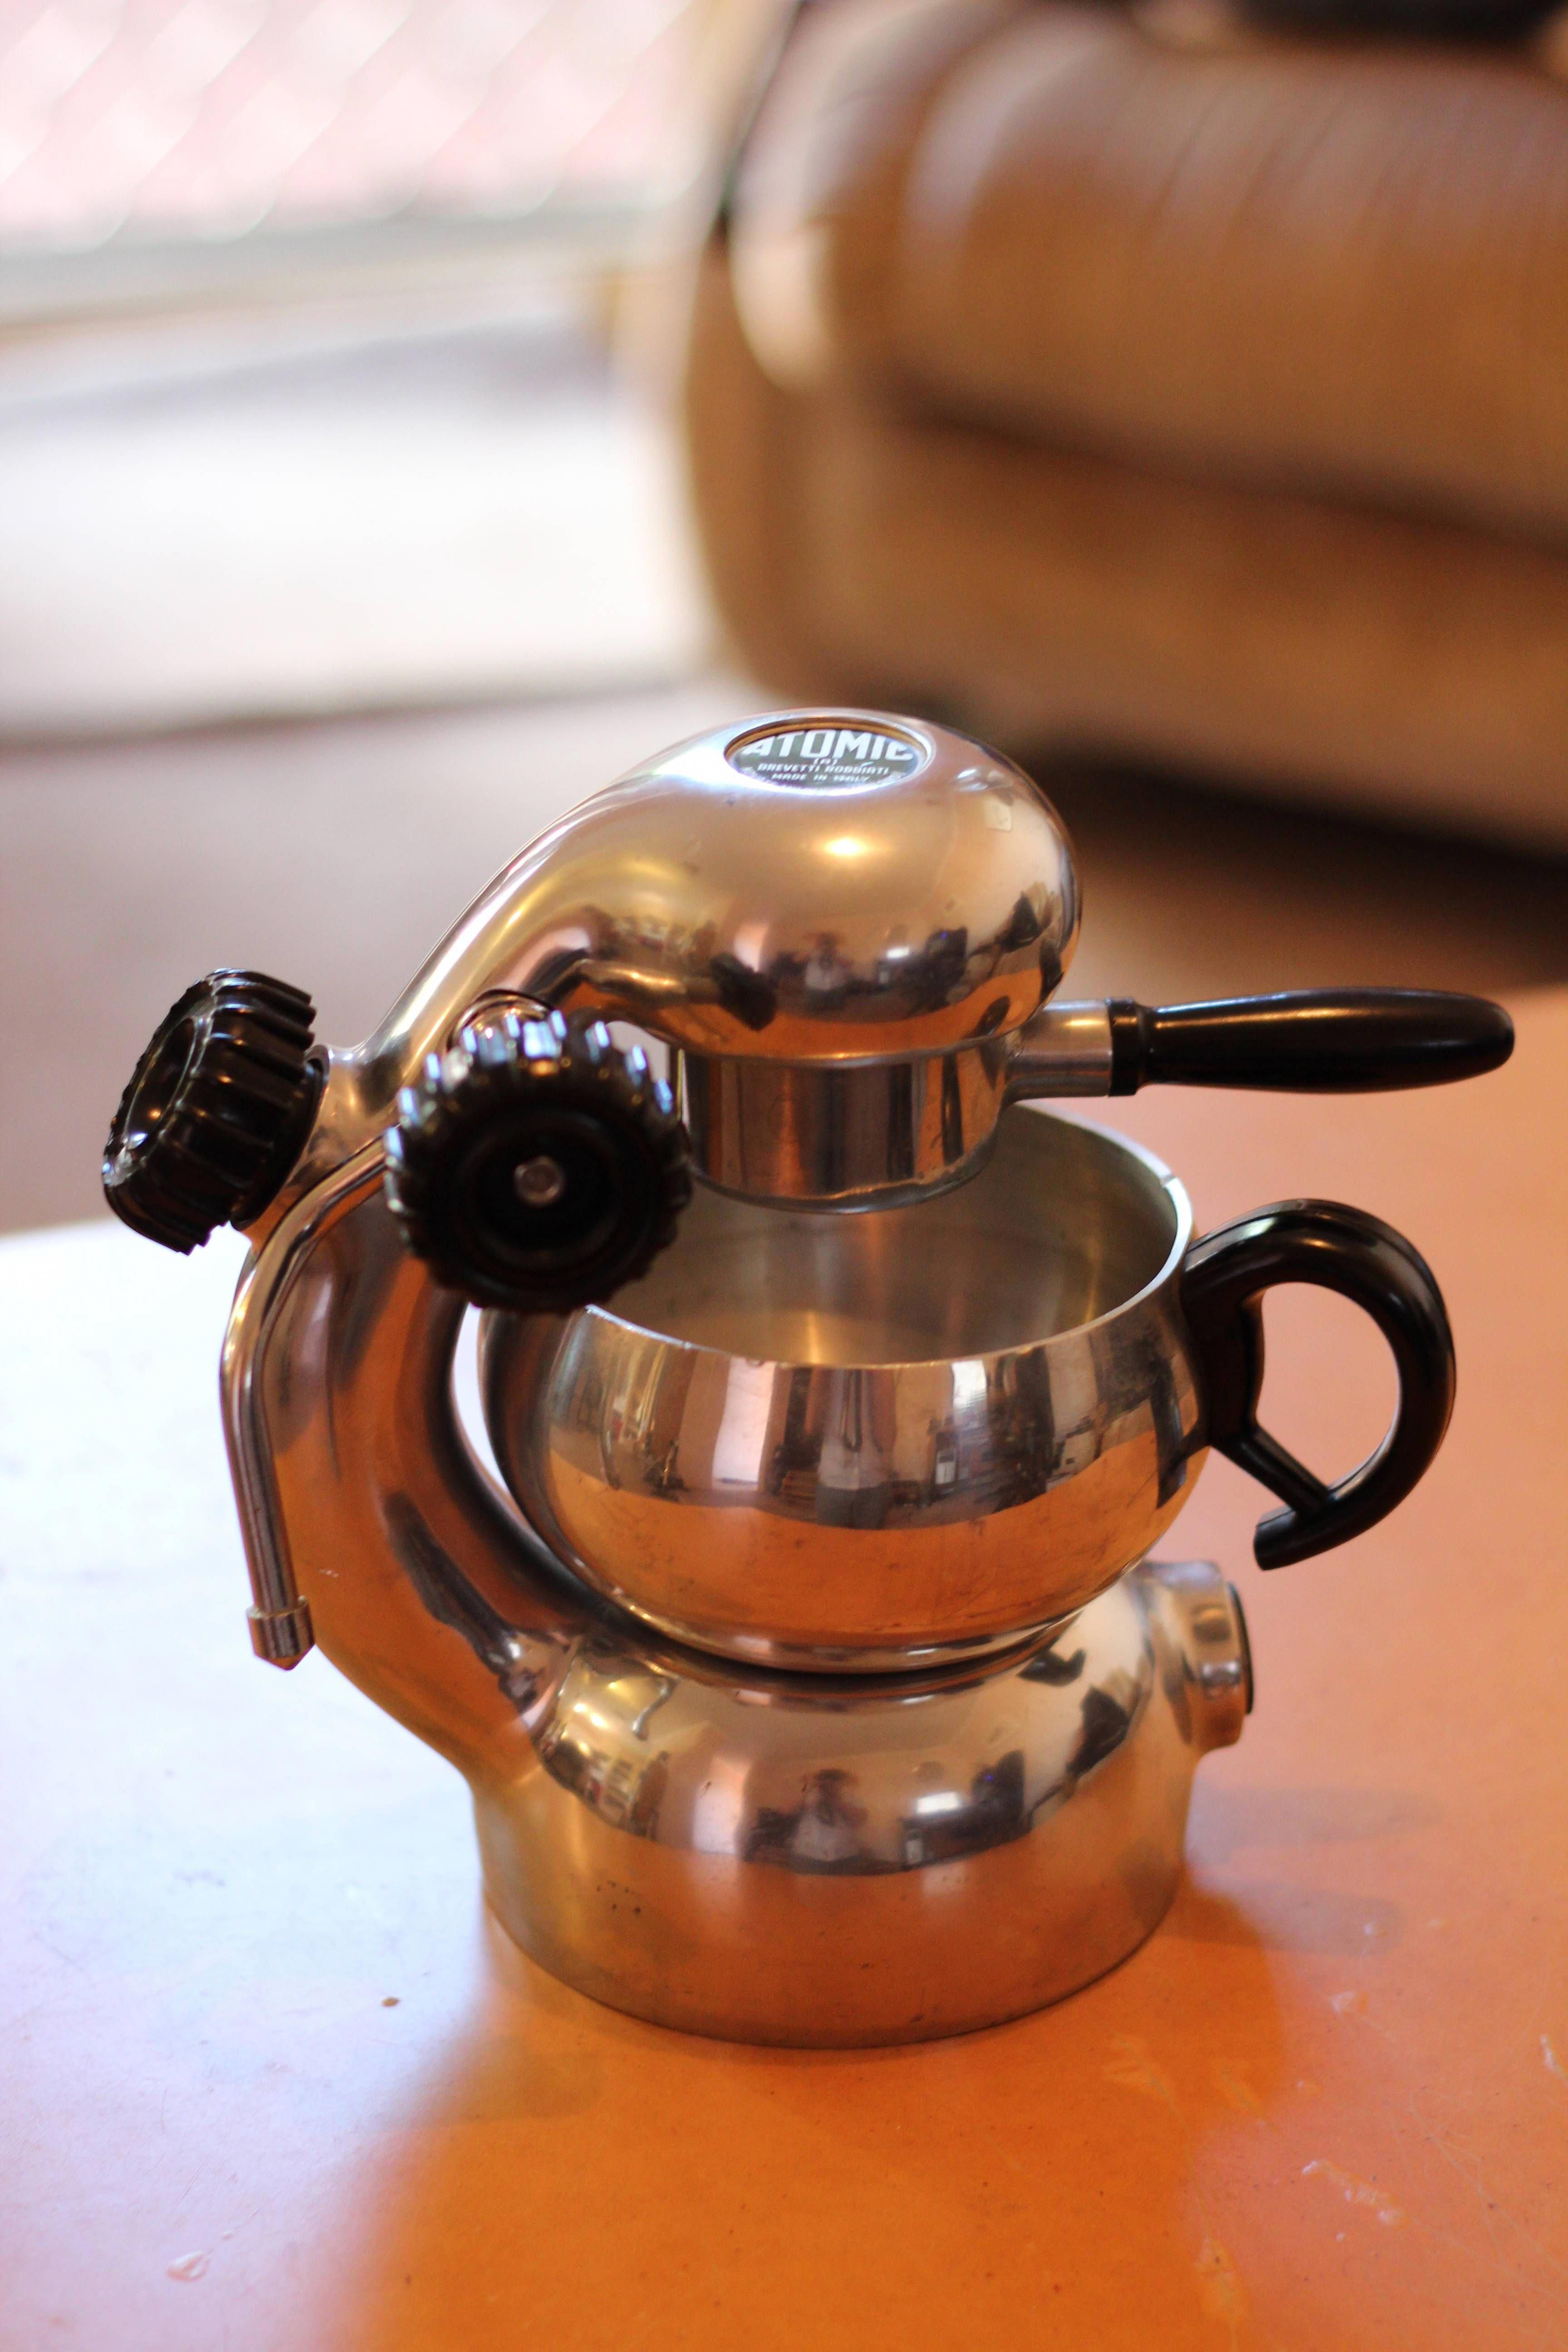 Stovetop espresso machine. Nespresso (With images